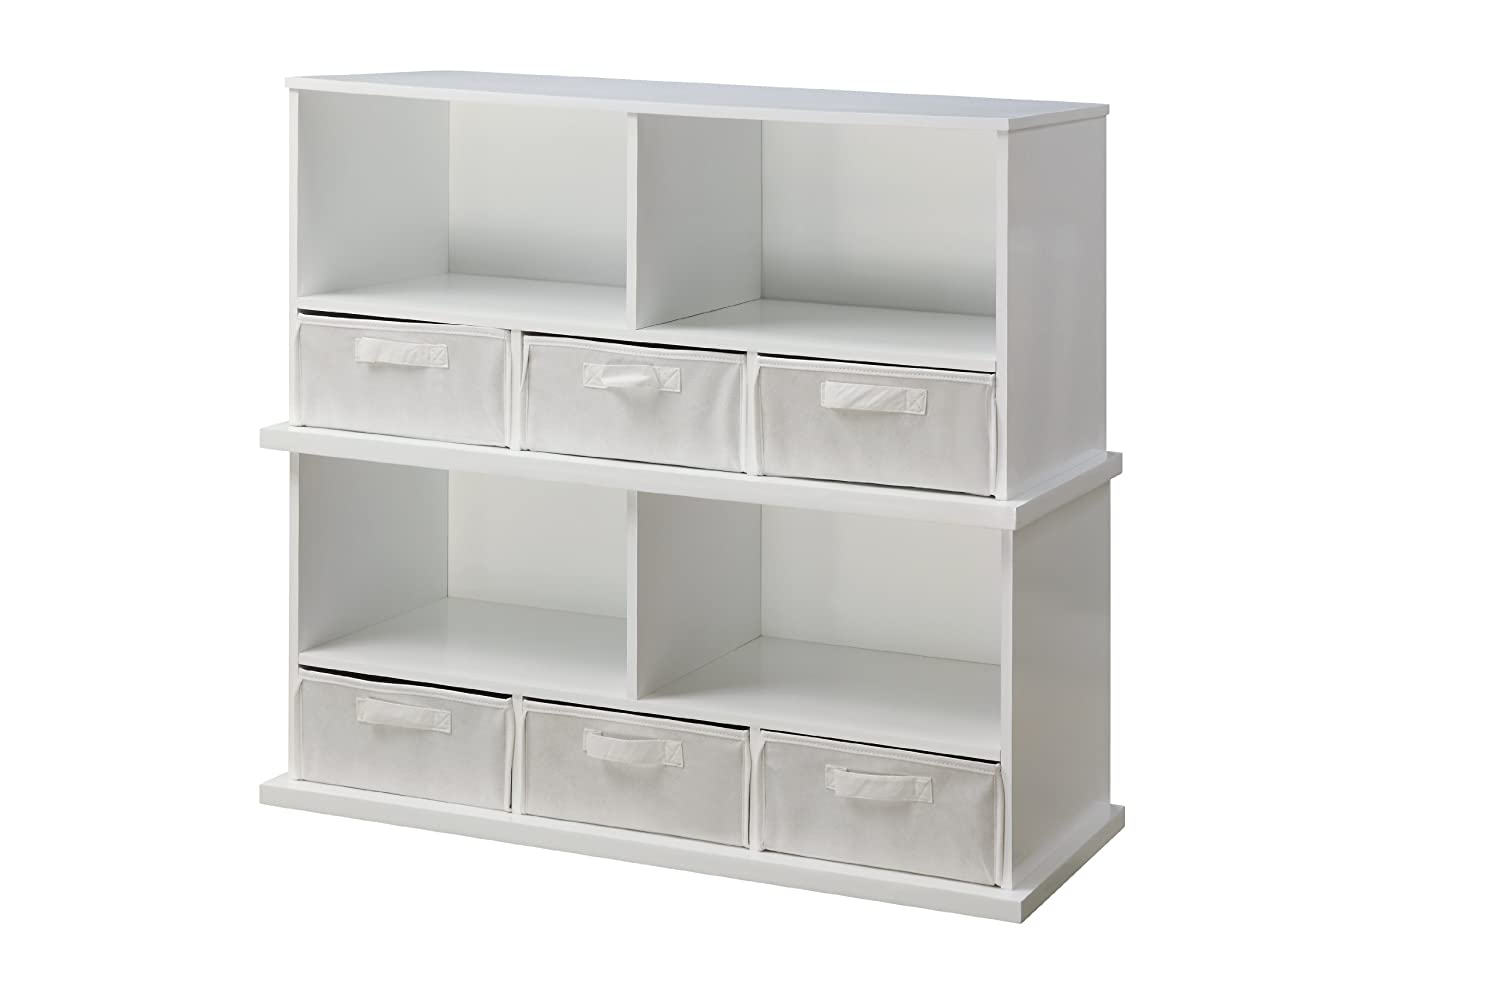 Amazon.com : Badger Basket Shelf Storage Cubby With Three Baskets, White :  Nursery Storage Baskets : Baby